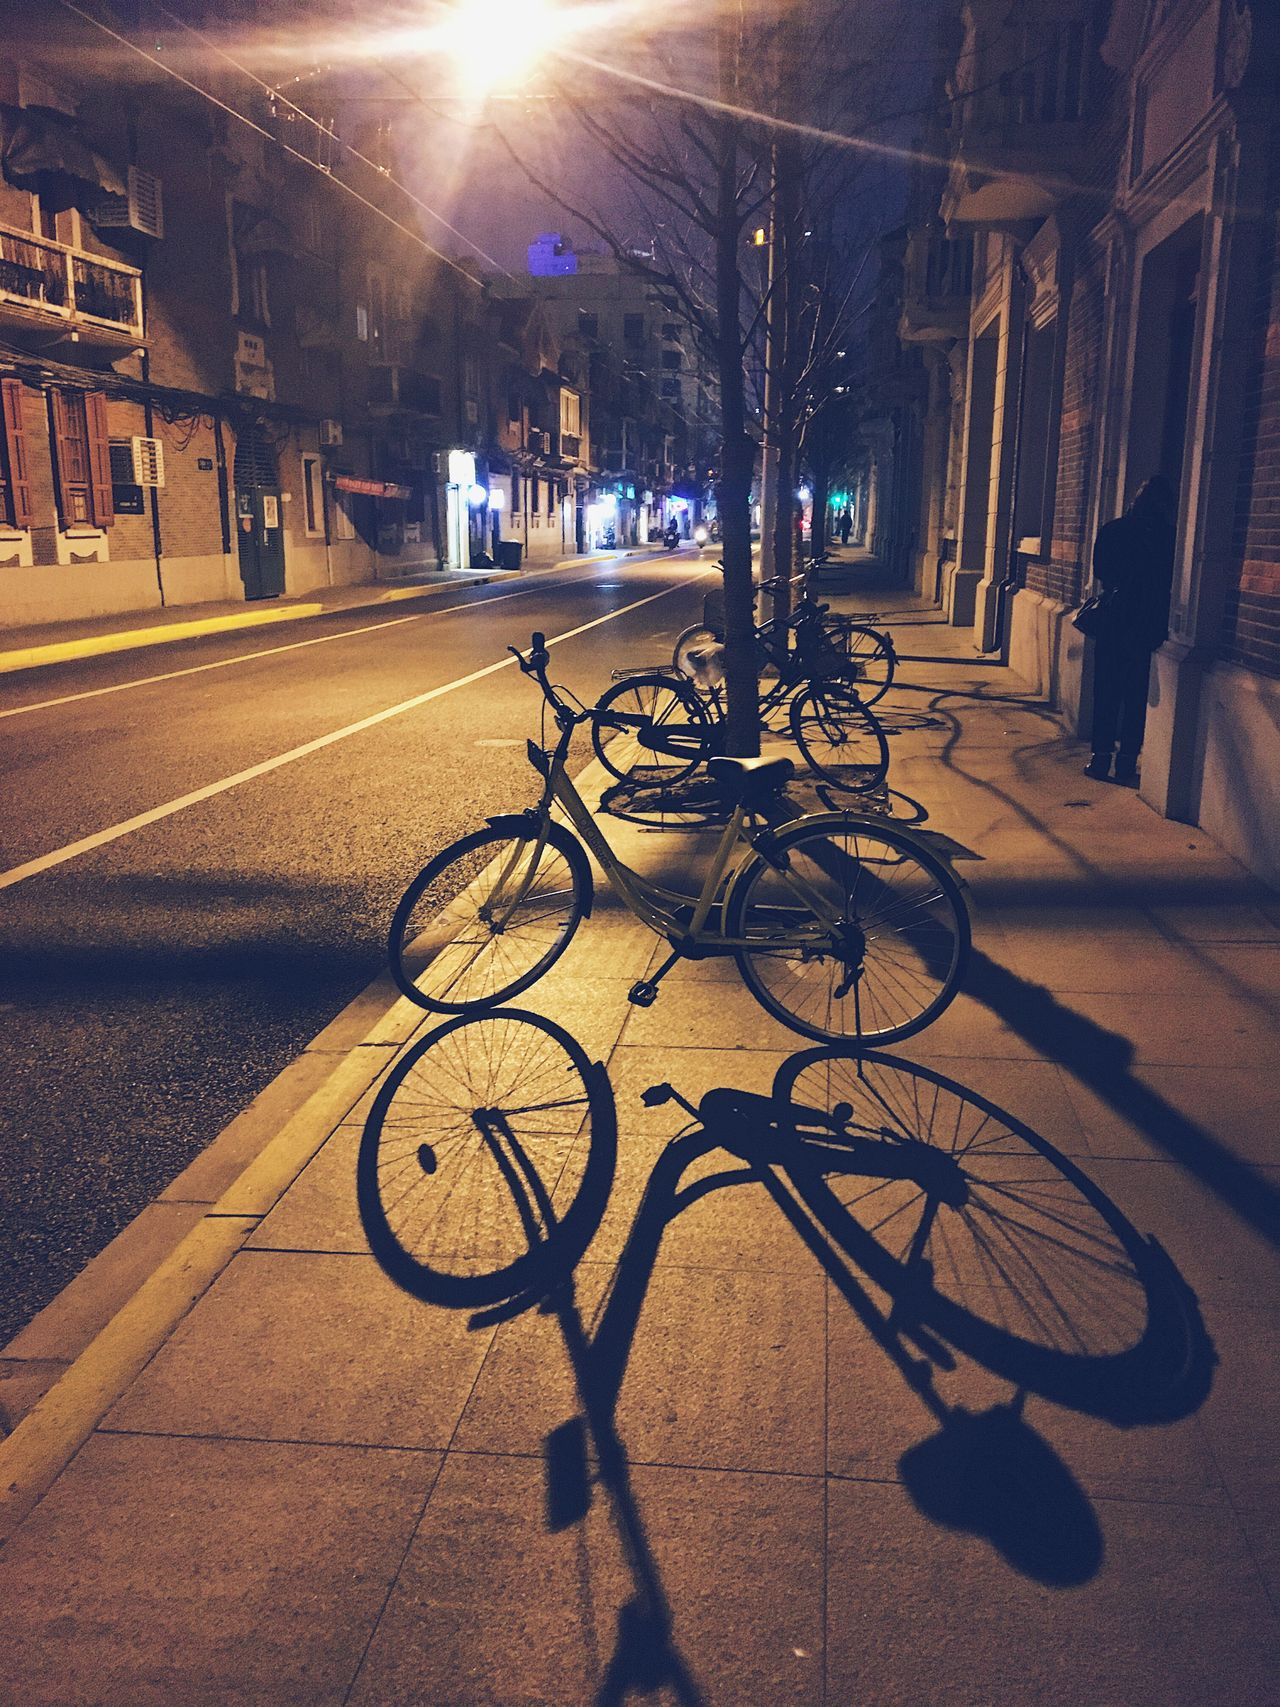 Bicycled parked on sidewalk at night